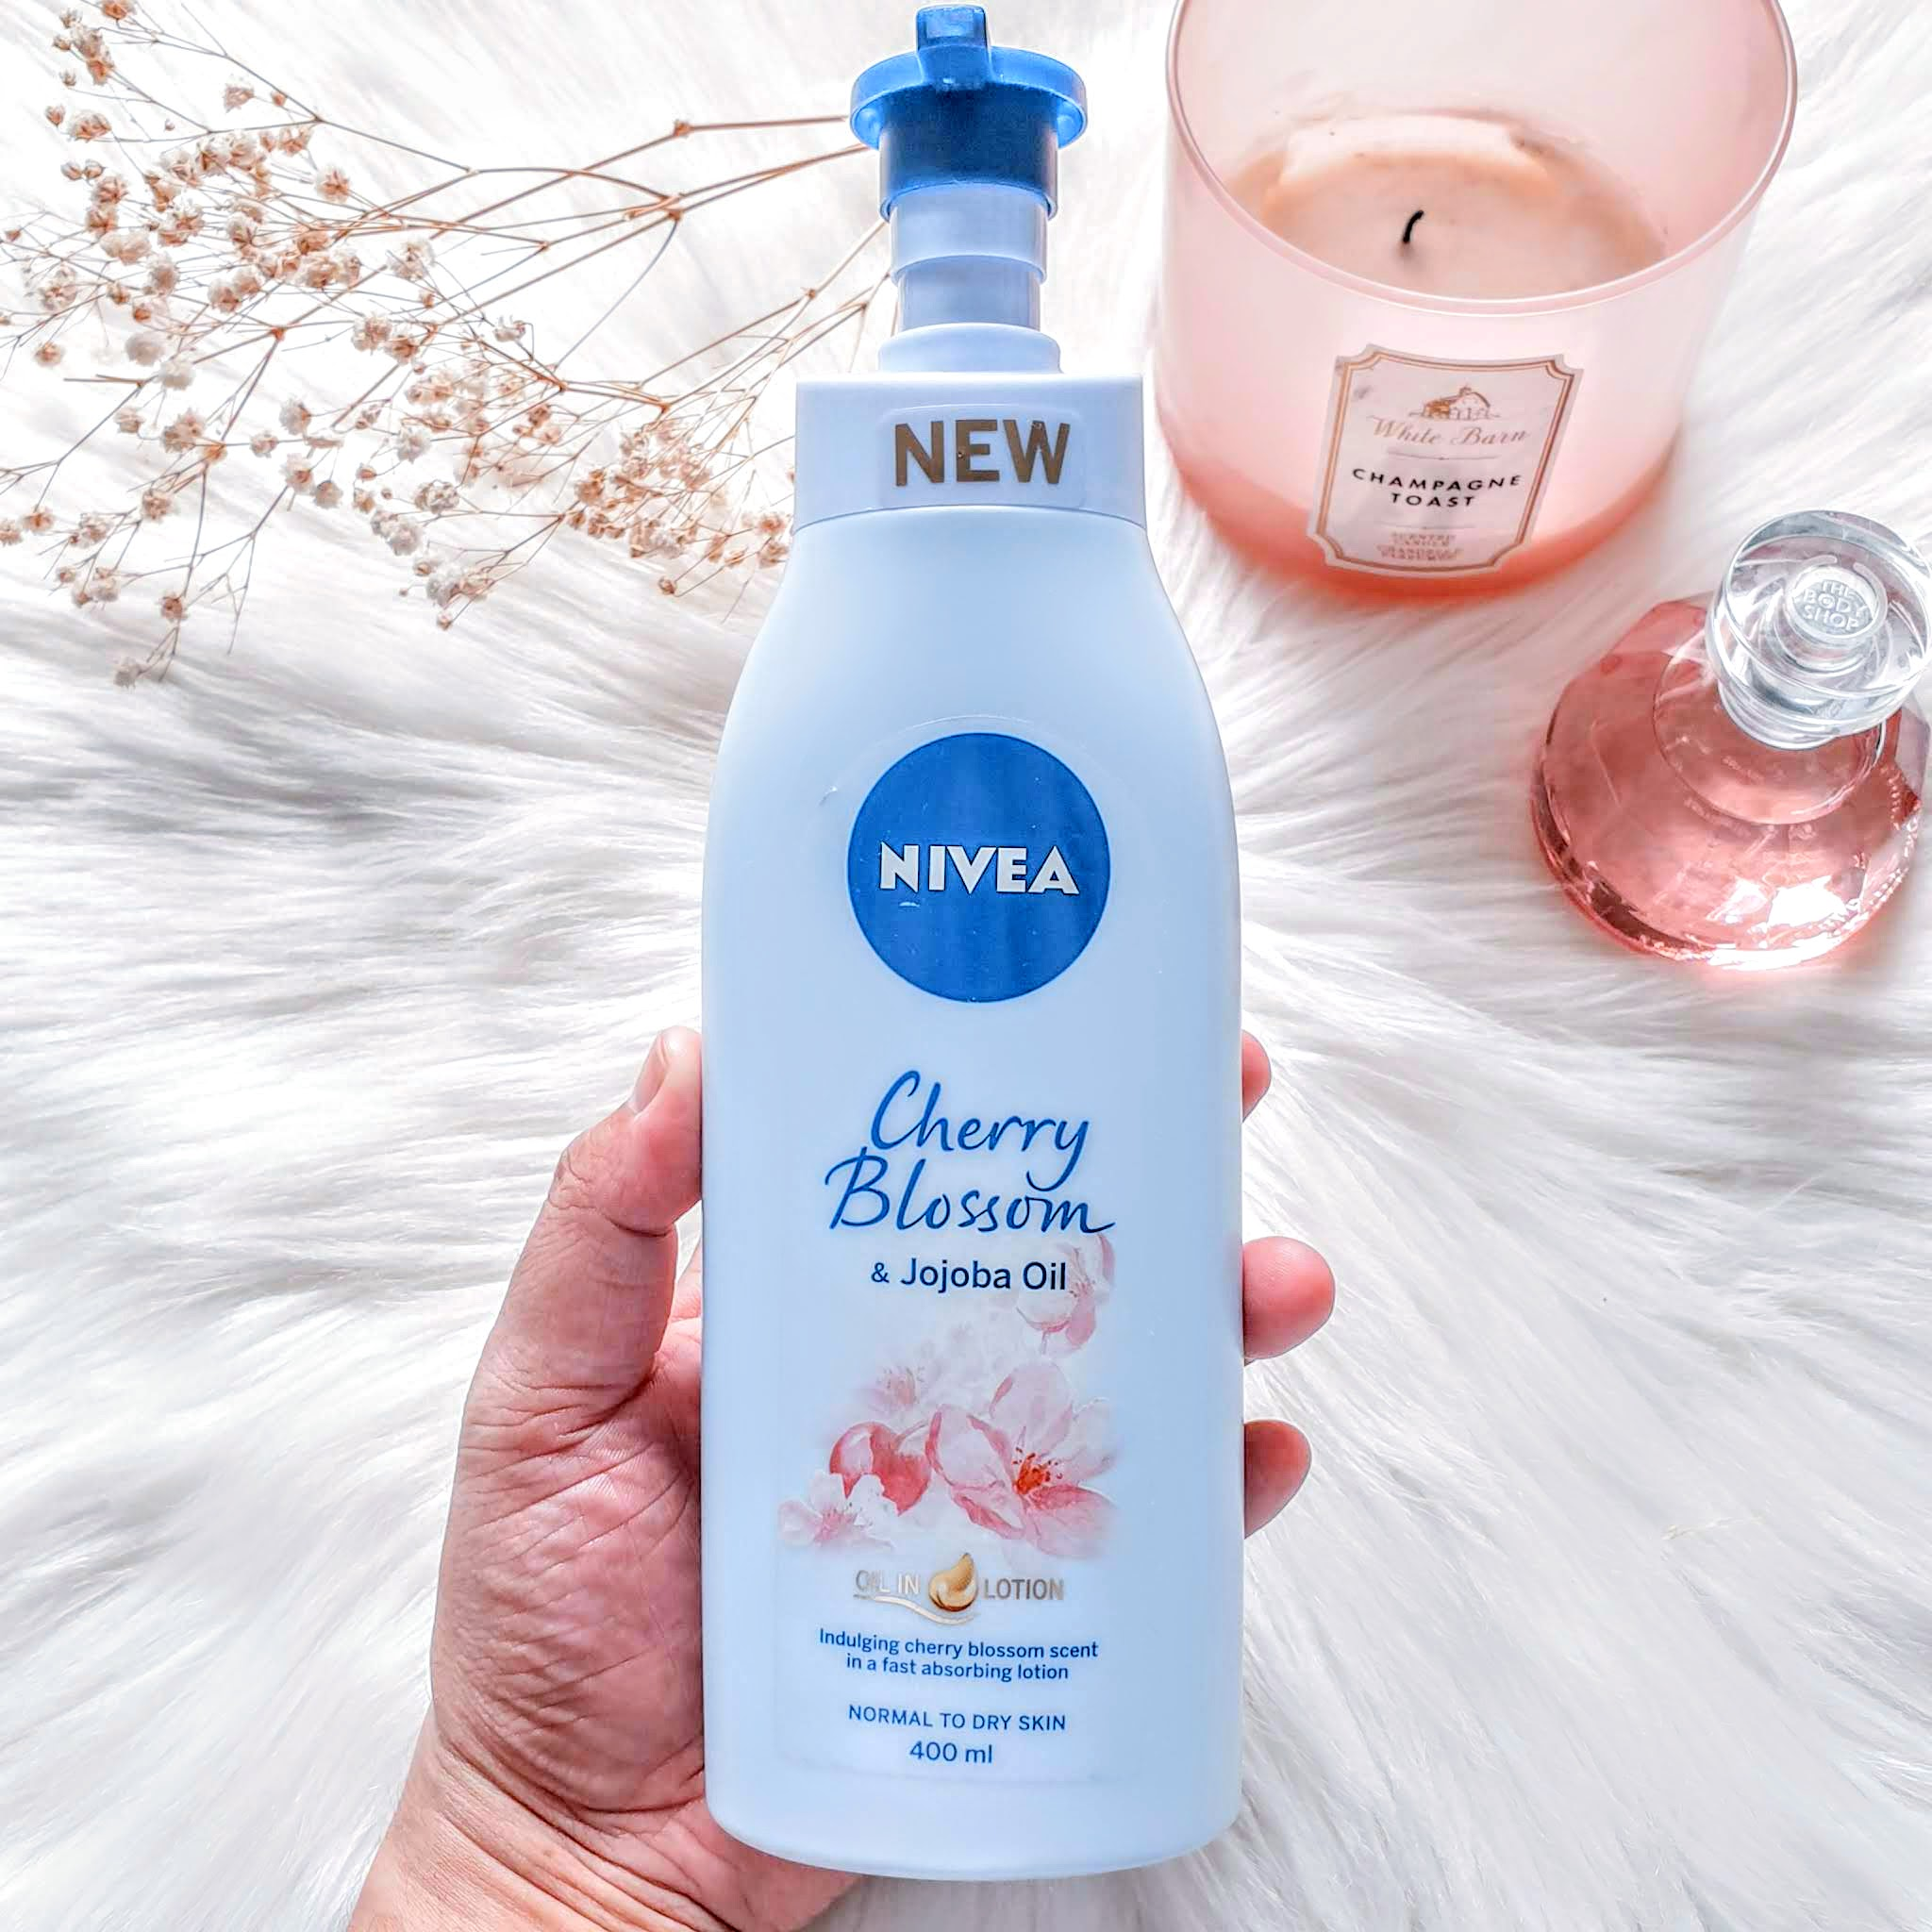 Nivea Oil-in-Lotion Cherry Blossom & Jojoba Oil | Review